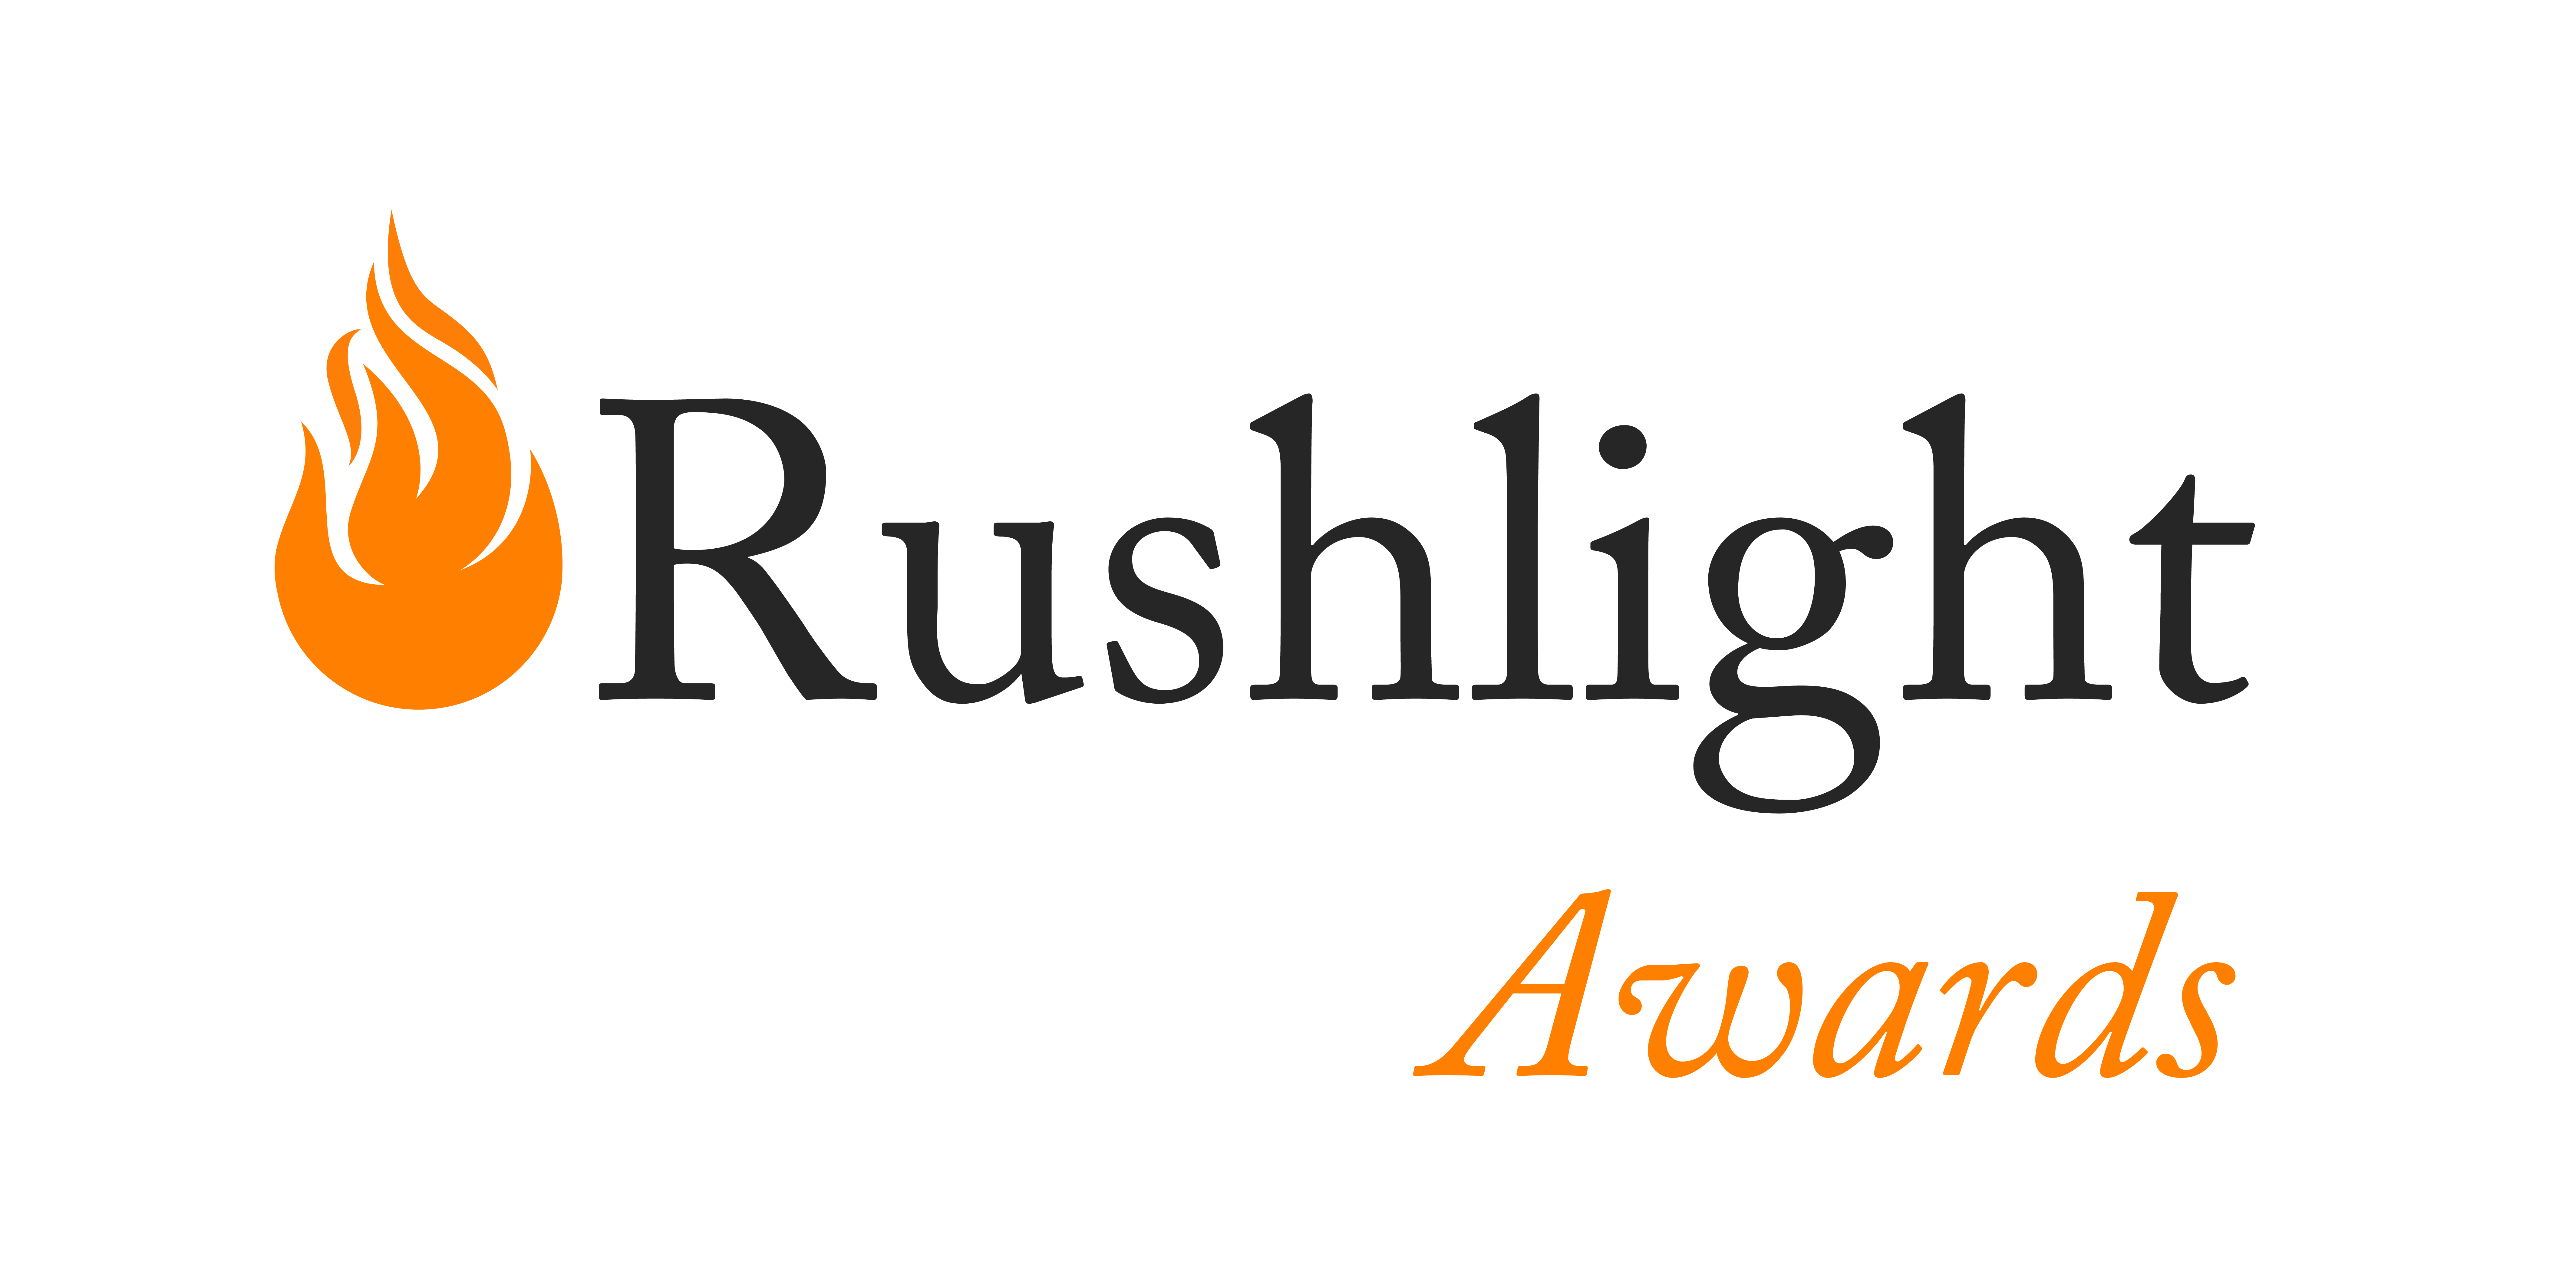 Registration Open for the Rushlight Show - 30 January 2020